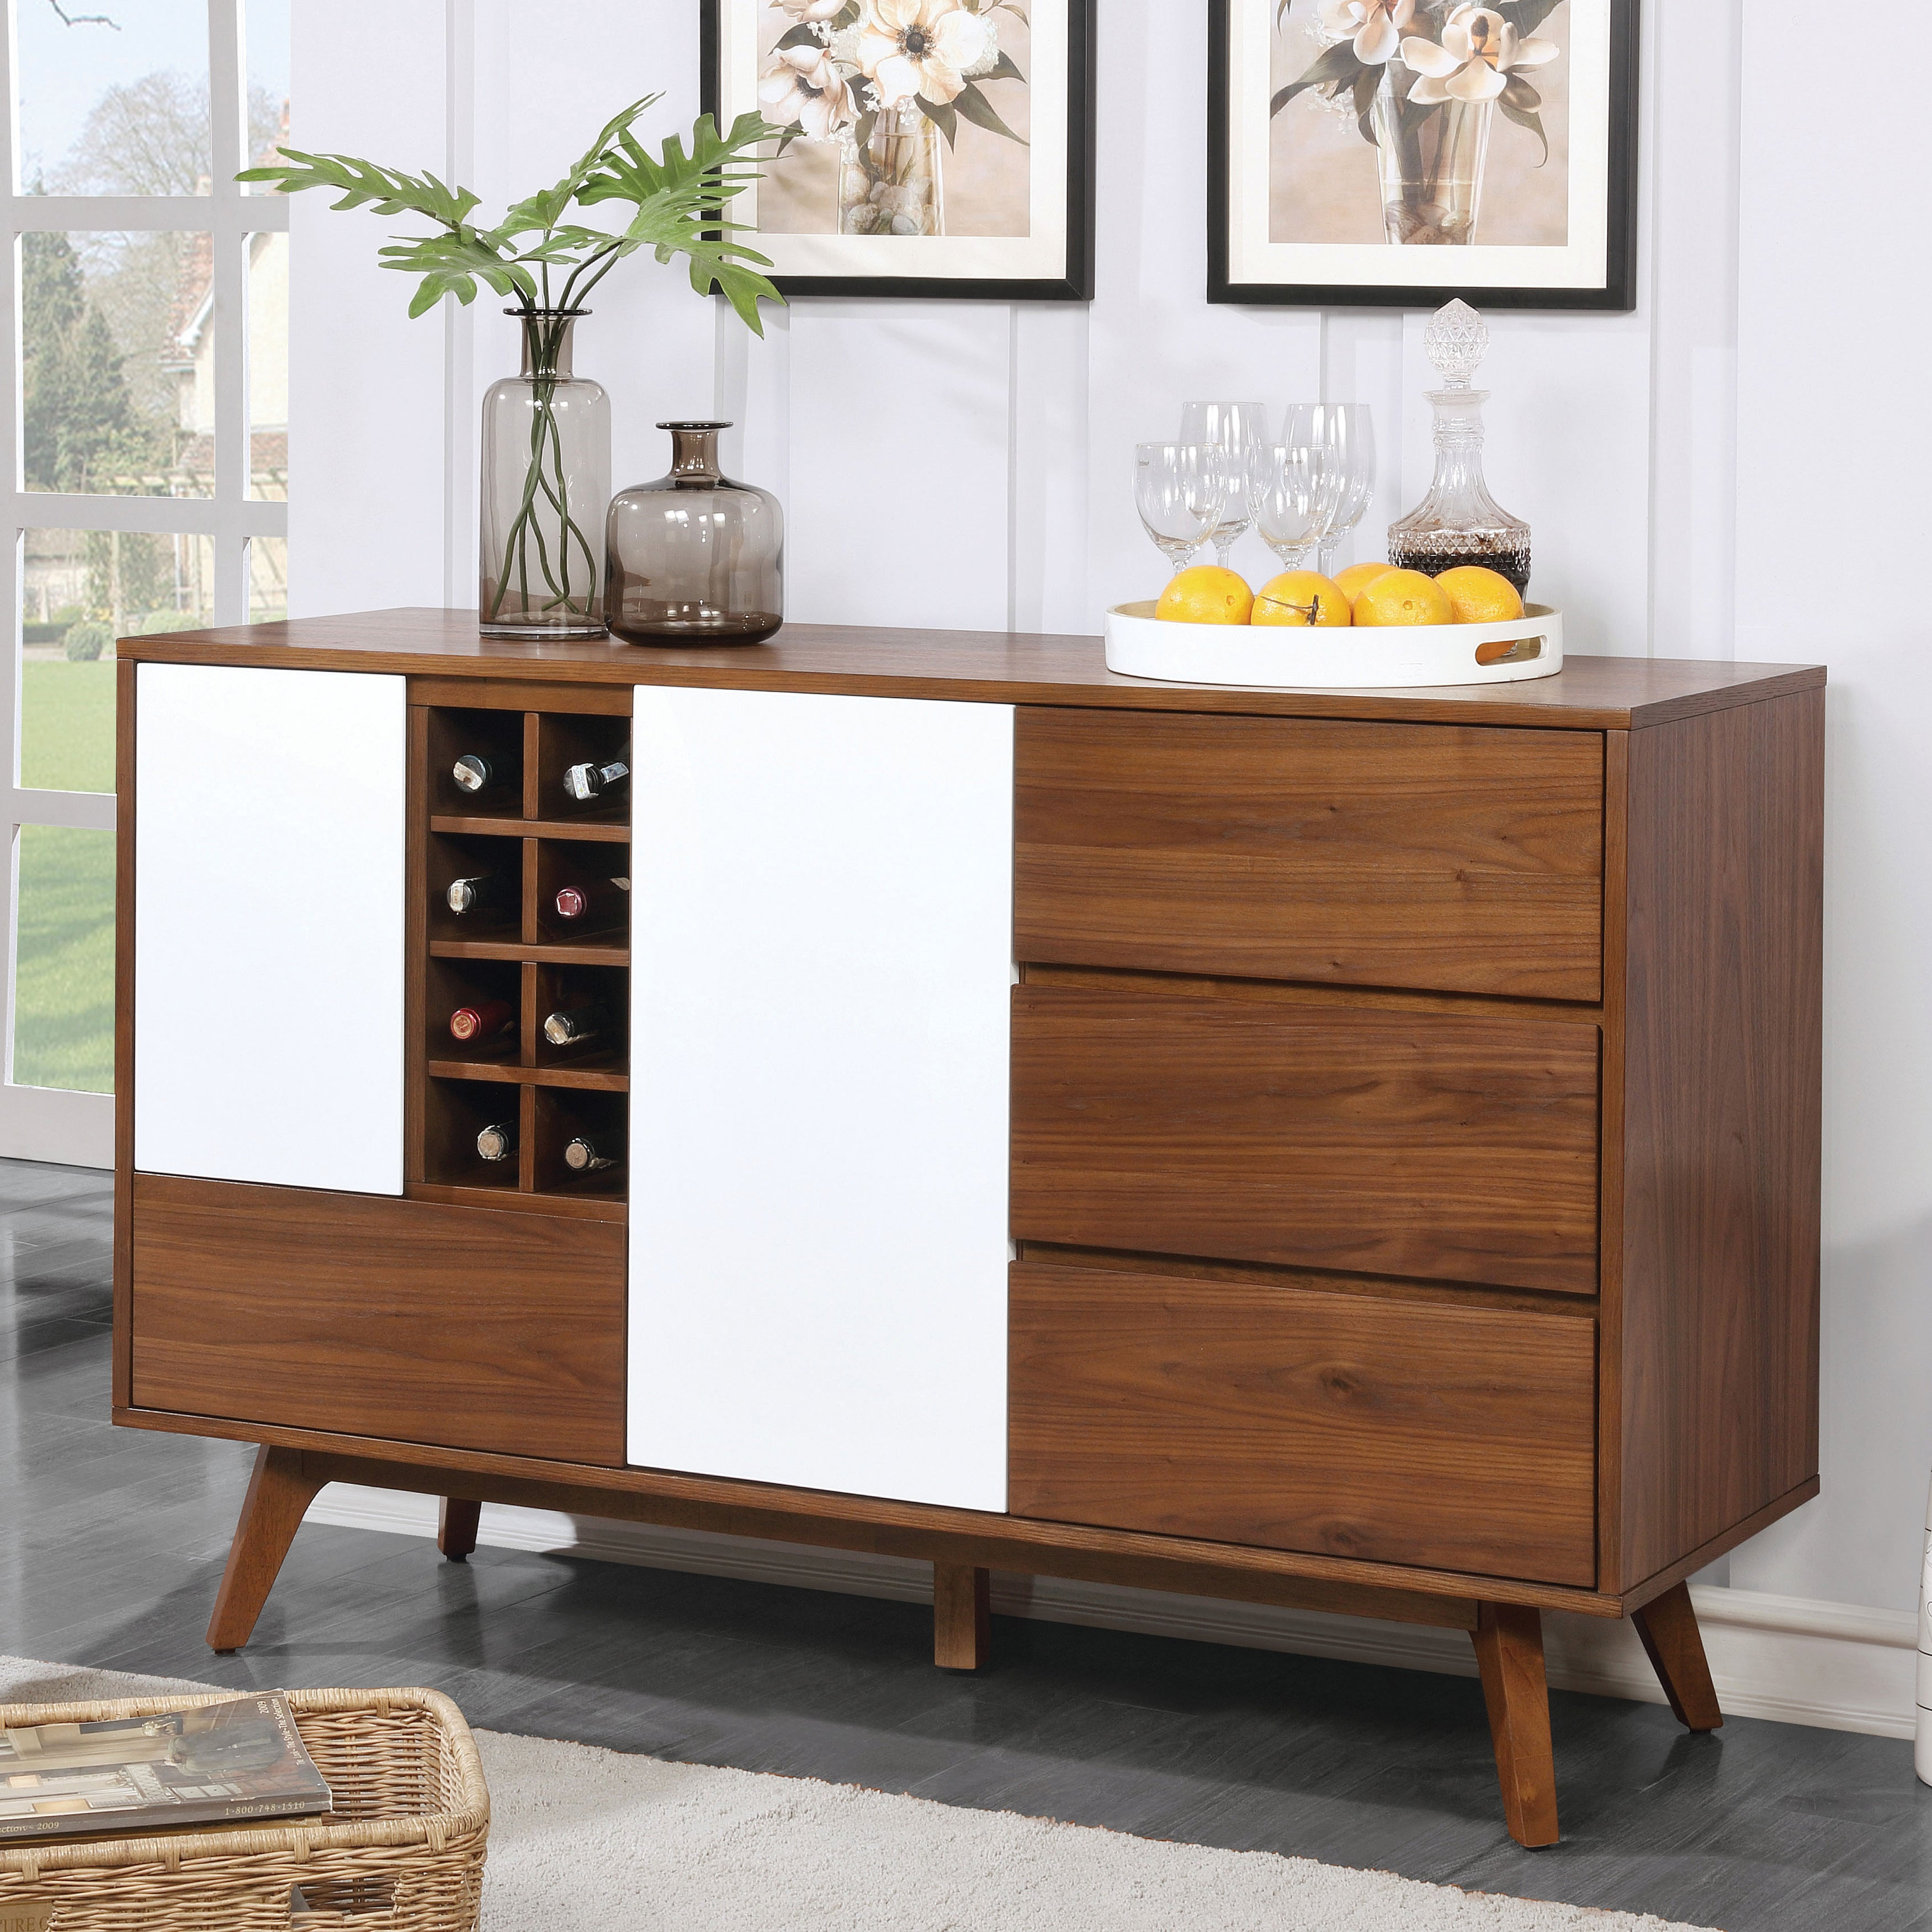 Furniture Of America Liman Mid-Century Modern 2-Tone Oak/white  Multi-Storage Buffet/wine Cabinet with regard to Modern Natural Oak Dining Buffets (Image 19 of 30)